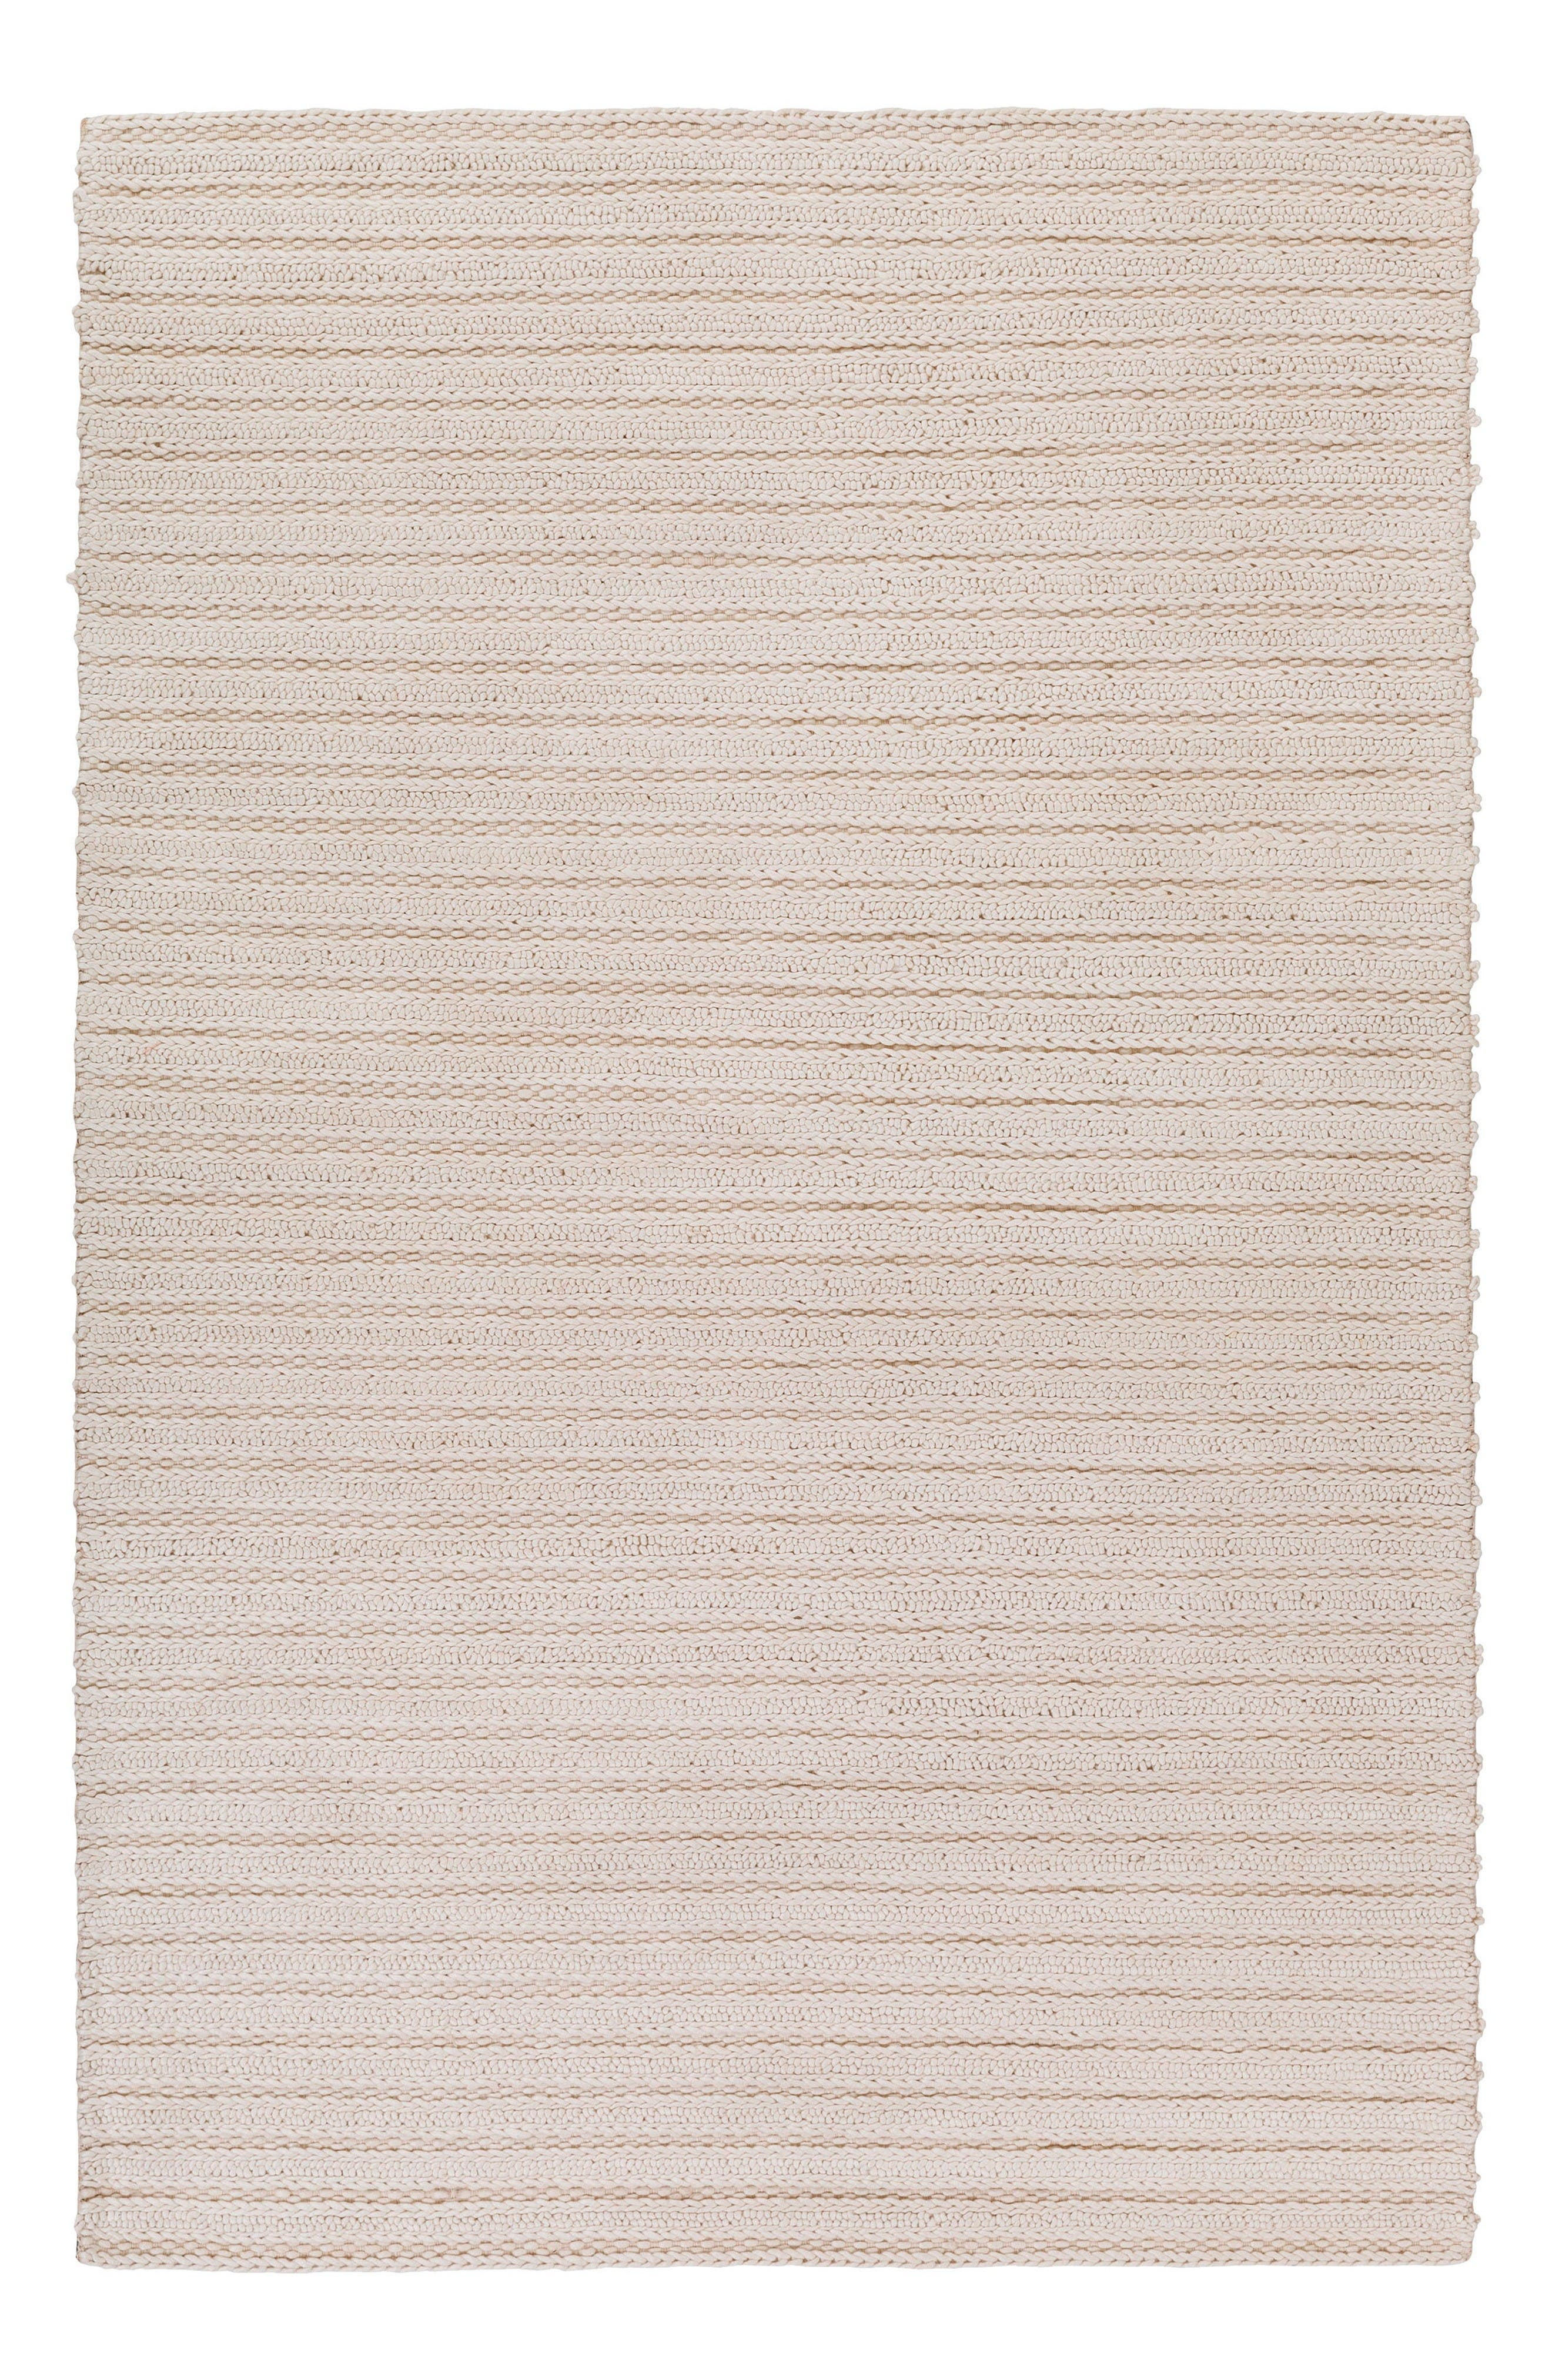 Kindred Rug,                         Main,                         color, White